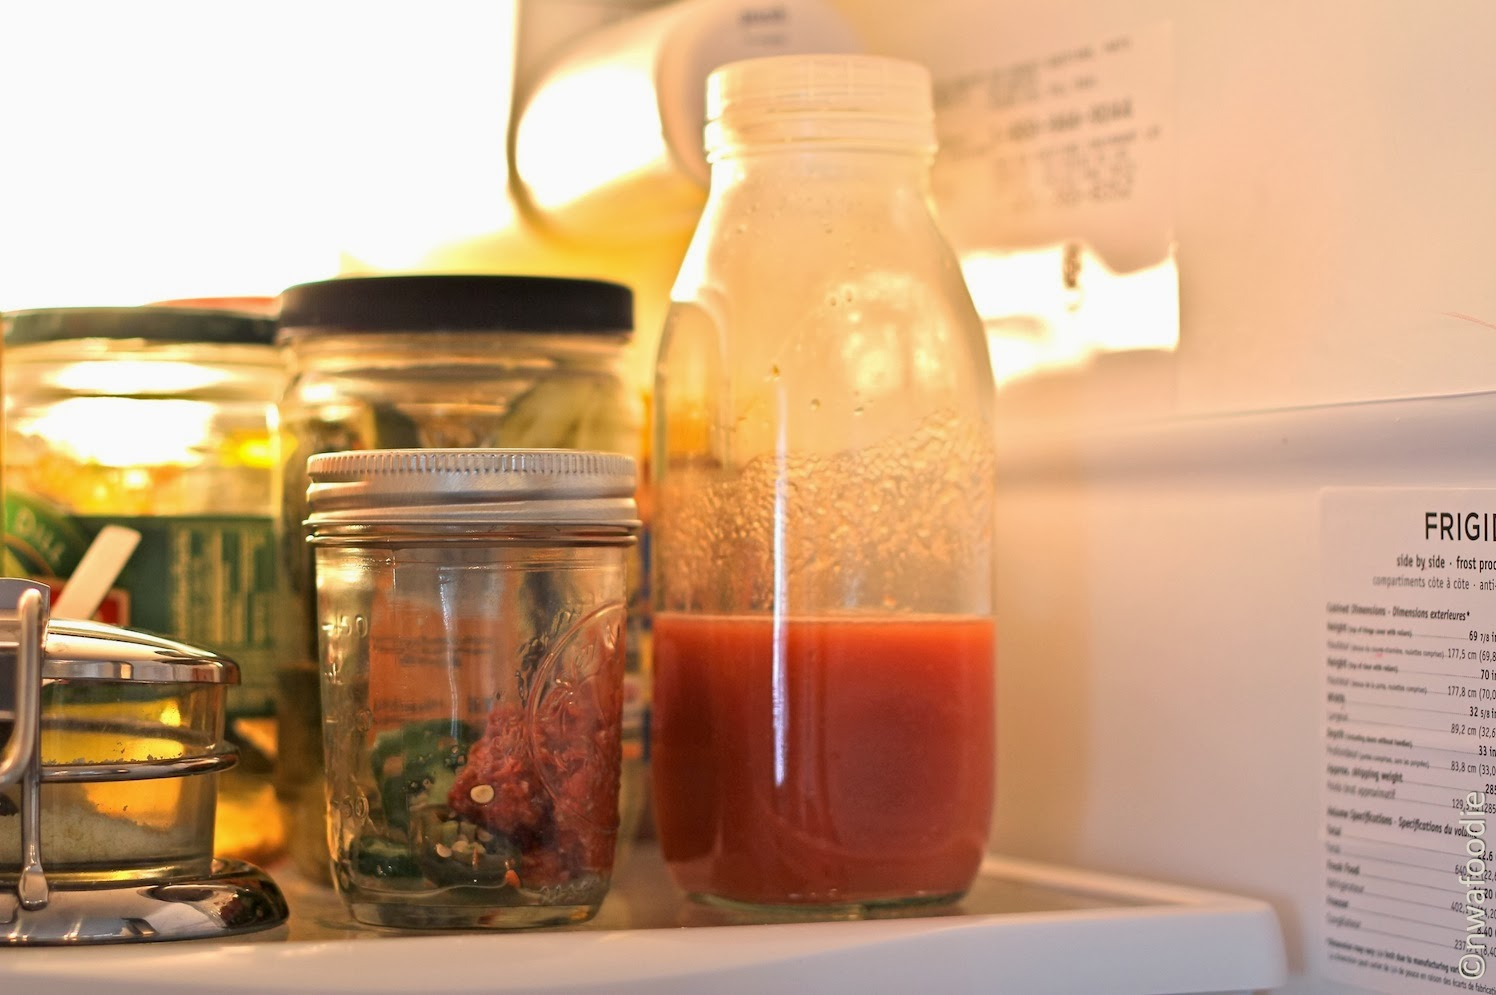 make your own hot sauce with Nutribullet blender strainer (c)nwafoodie